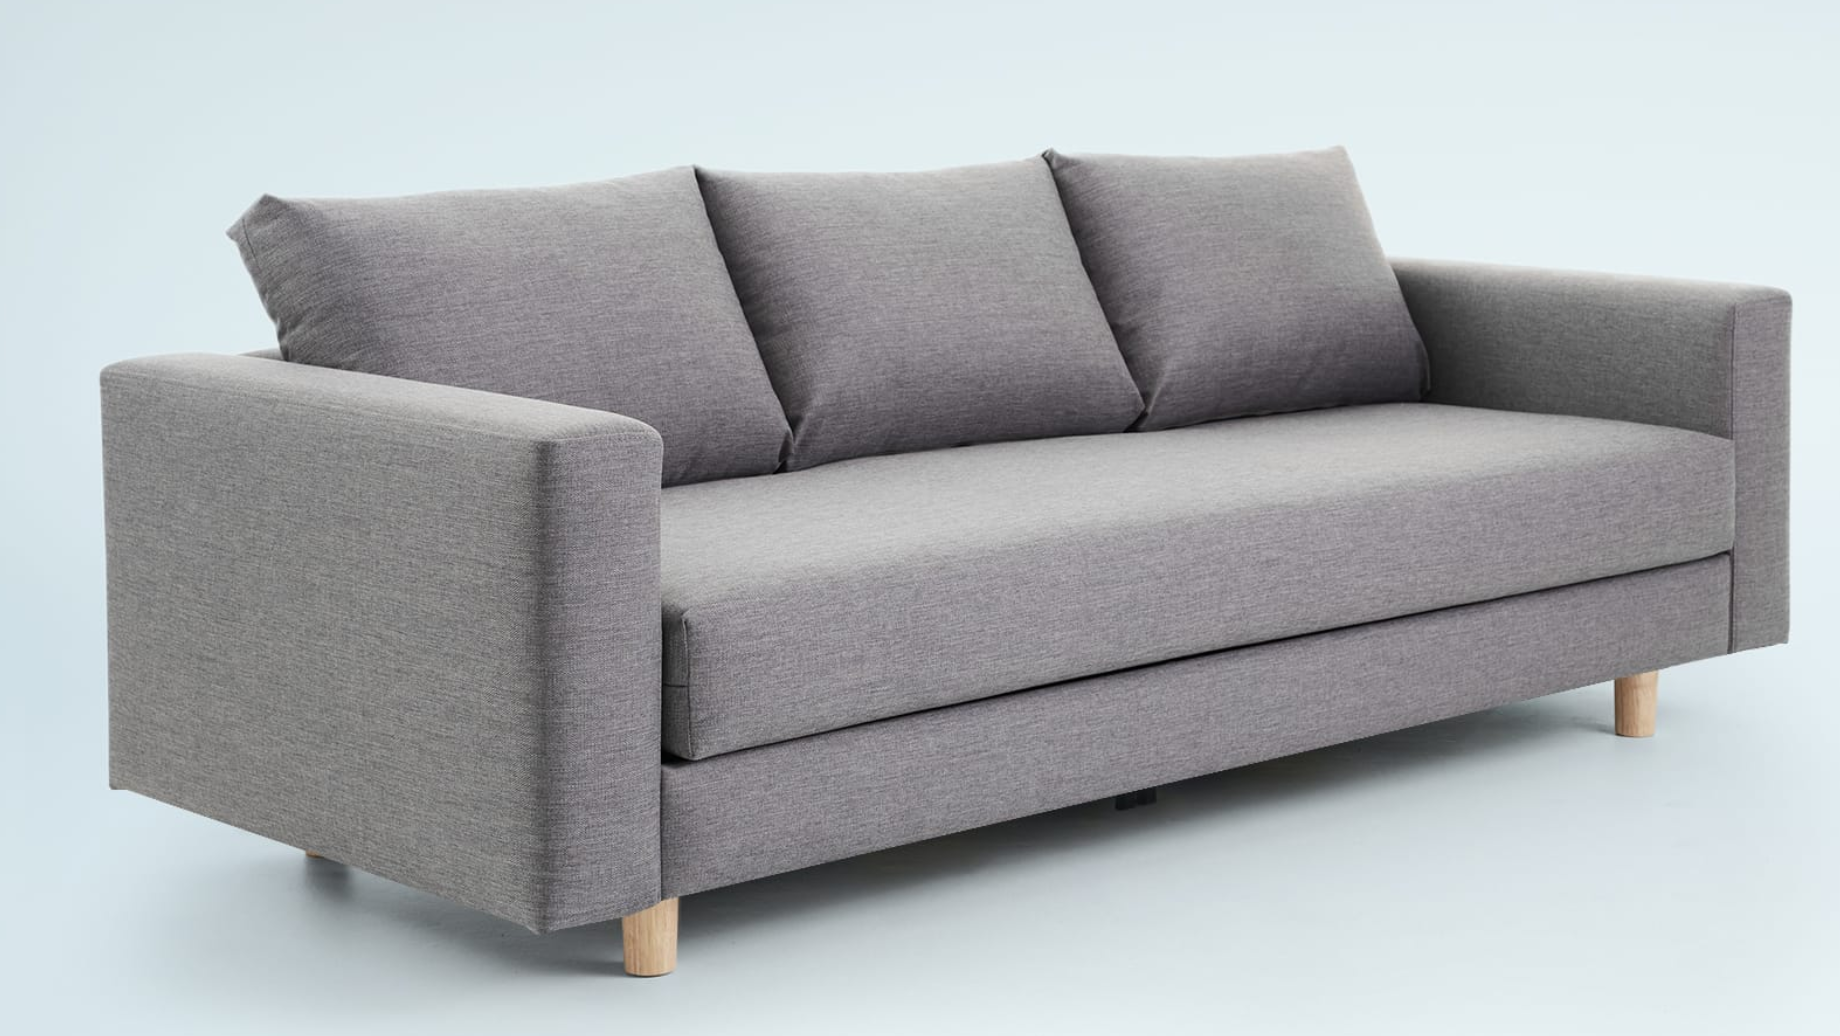 Couches For Sale Brisbane Koala Sofa In Storm Grey My Apartment Ideas In 2019 Living